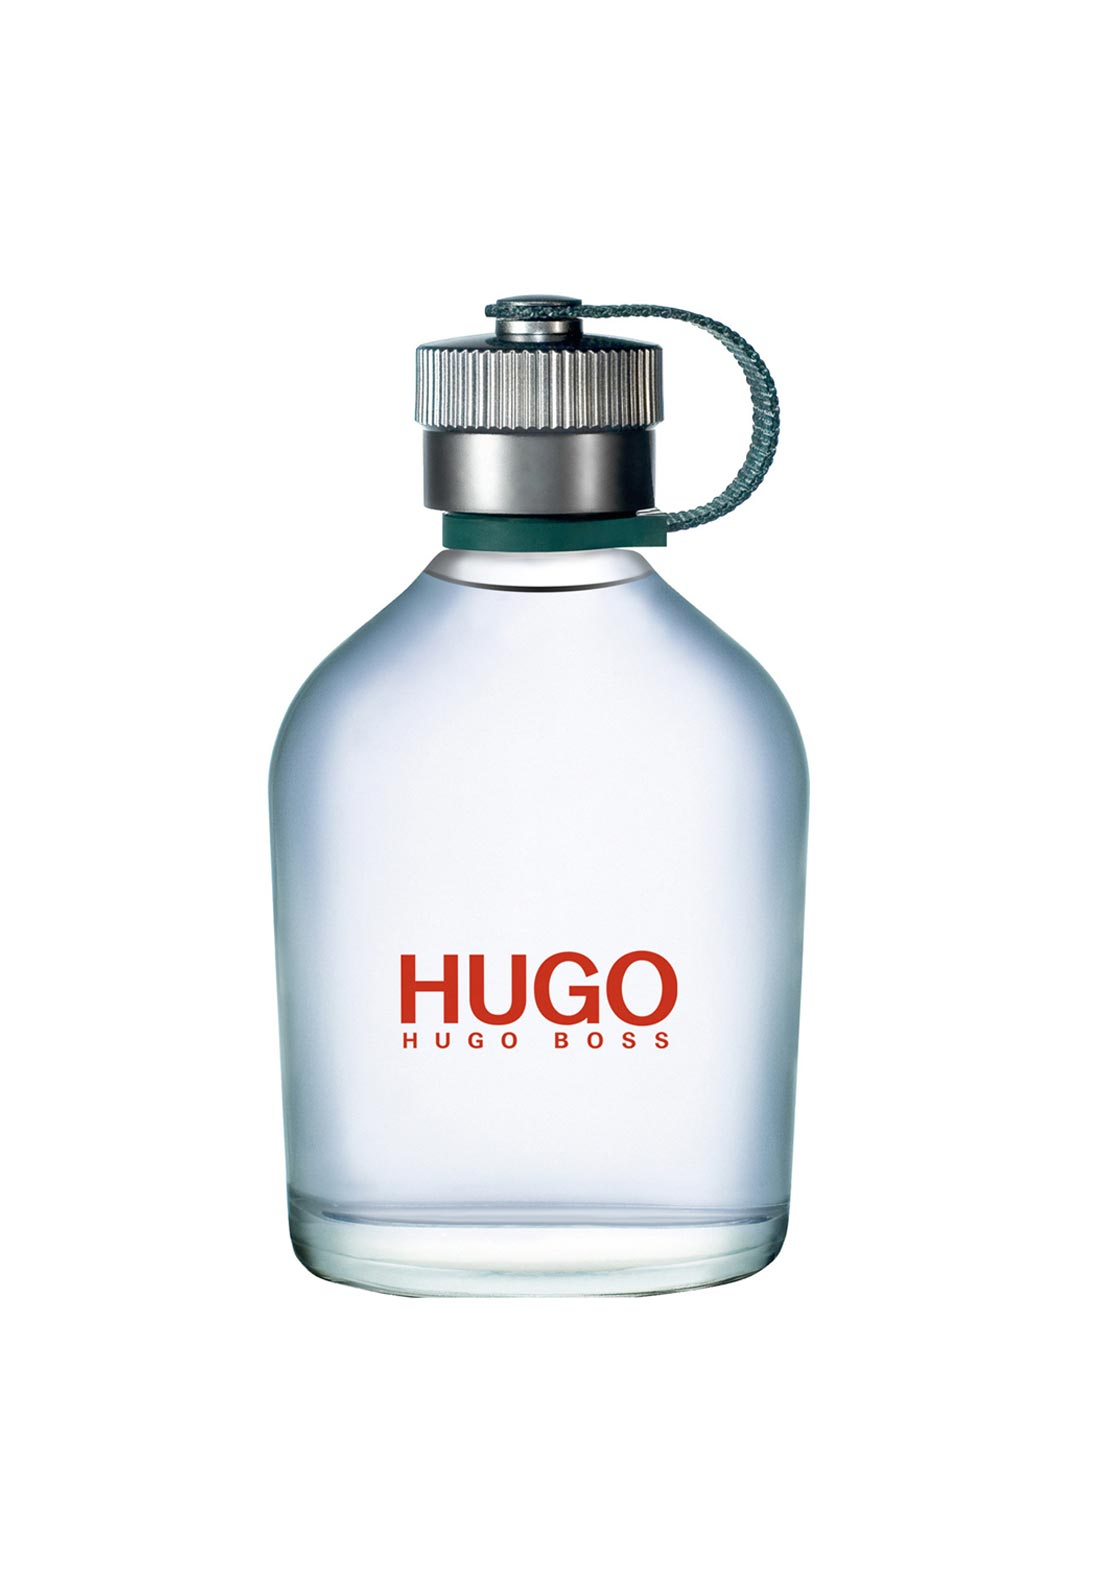 Hugo Boss HUGO Eau De Toilette Natural Spray, 40ml